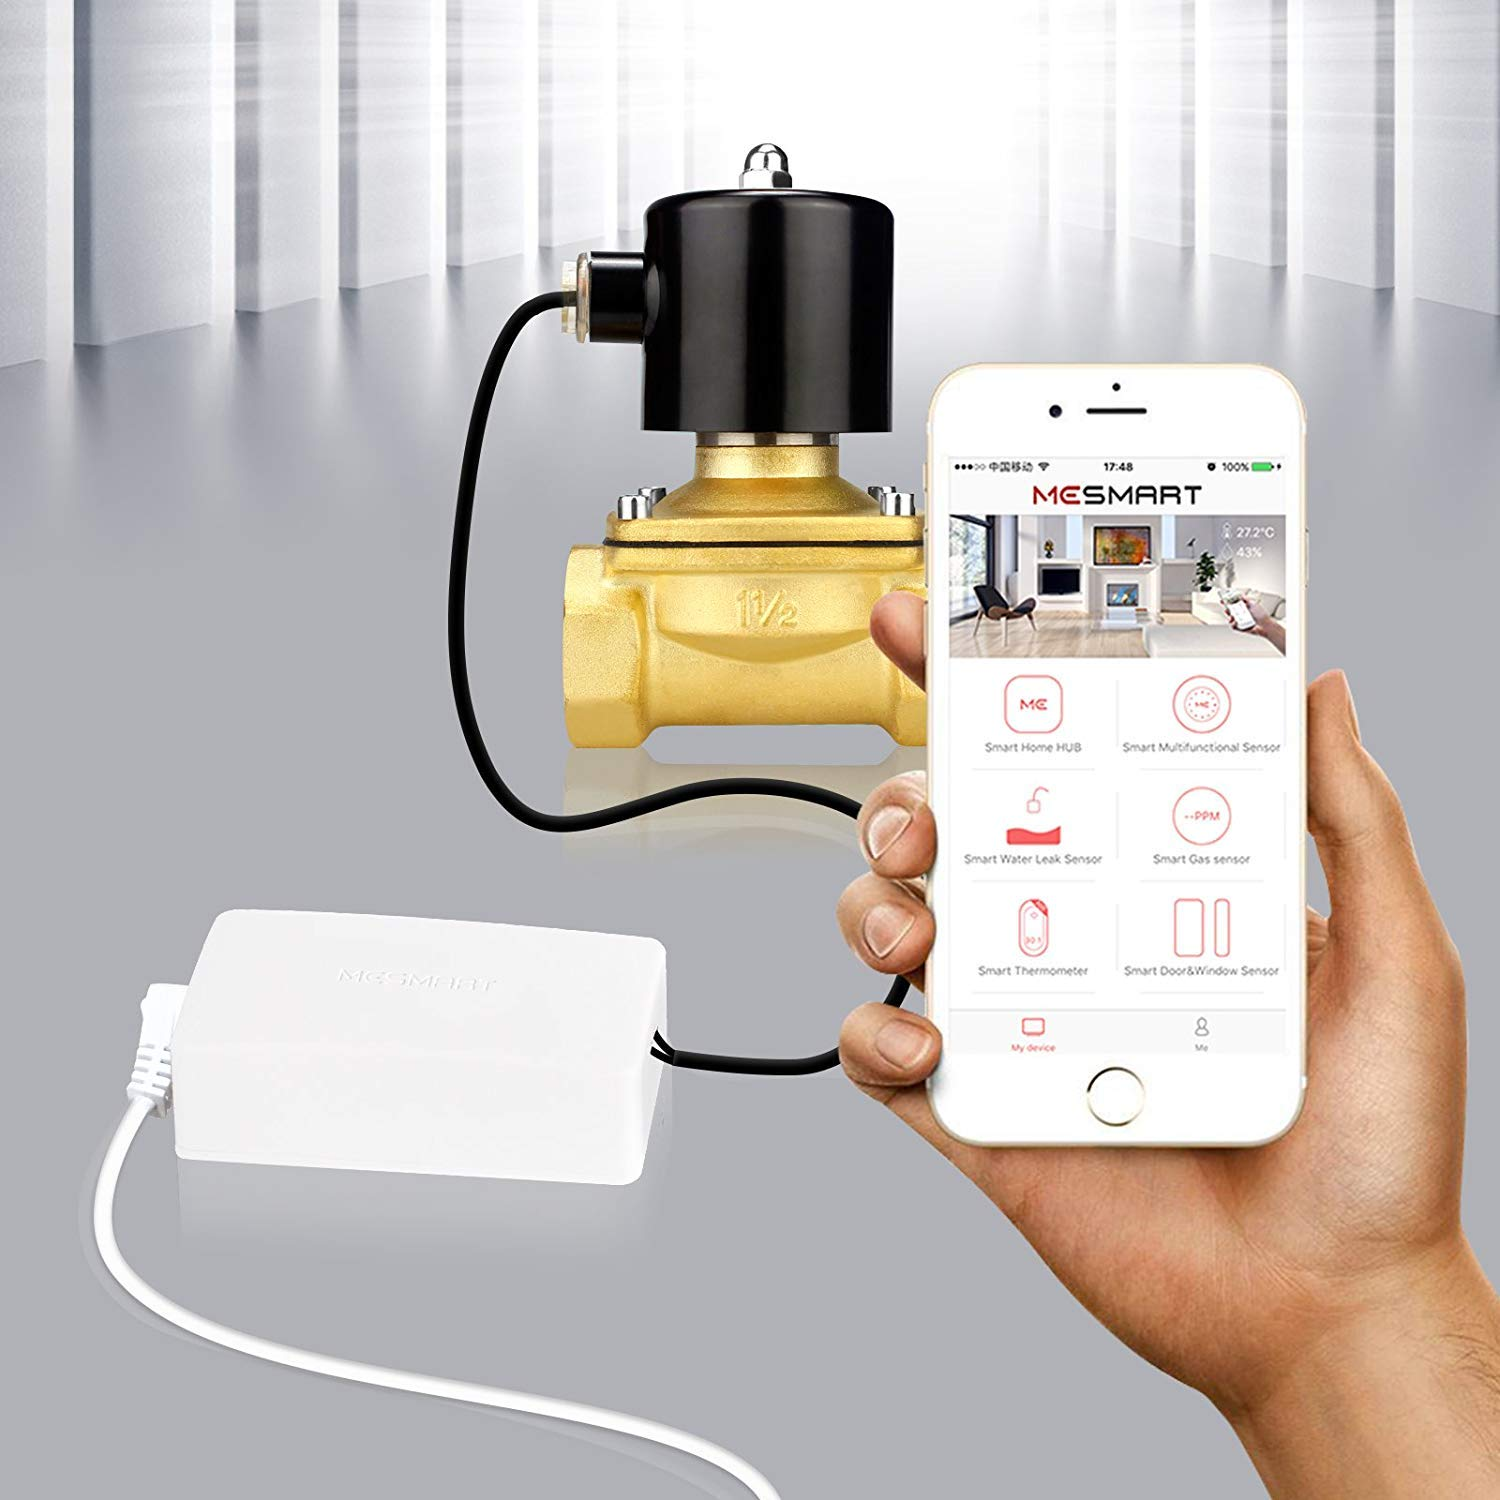 BOXMART Wi-Fi Smart Controller + 1/2'' Electric Solenoid Valve 12V DC for Water Gas Air Open Closed, Smart Phone Control, Home Hub is NOT Required